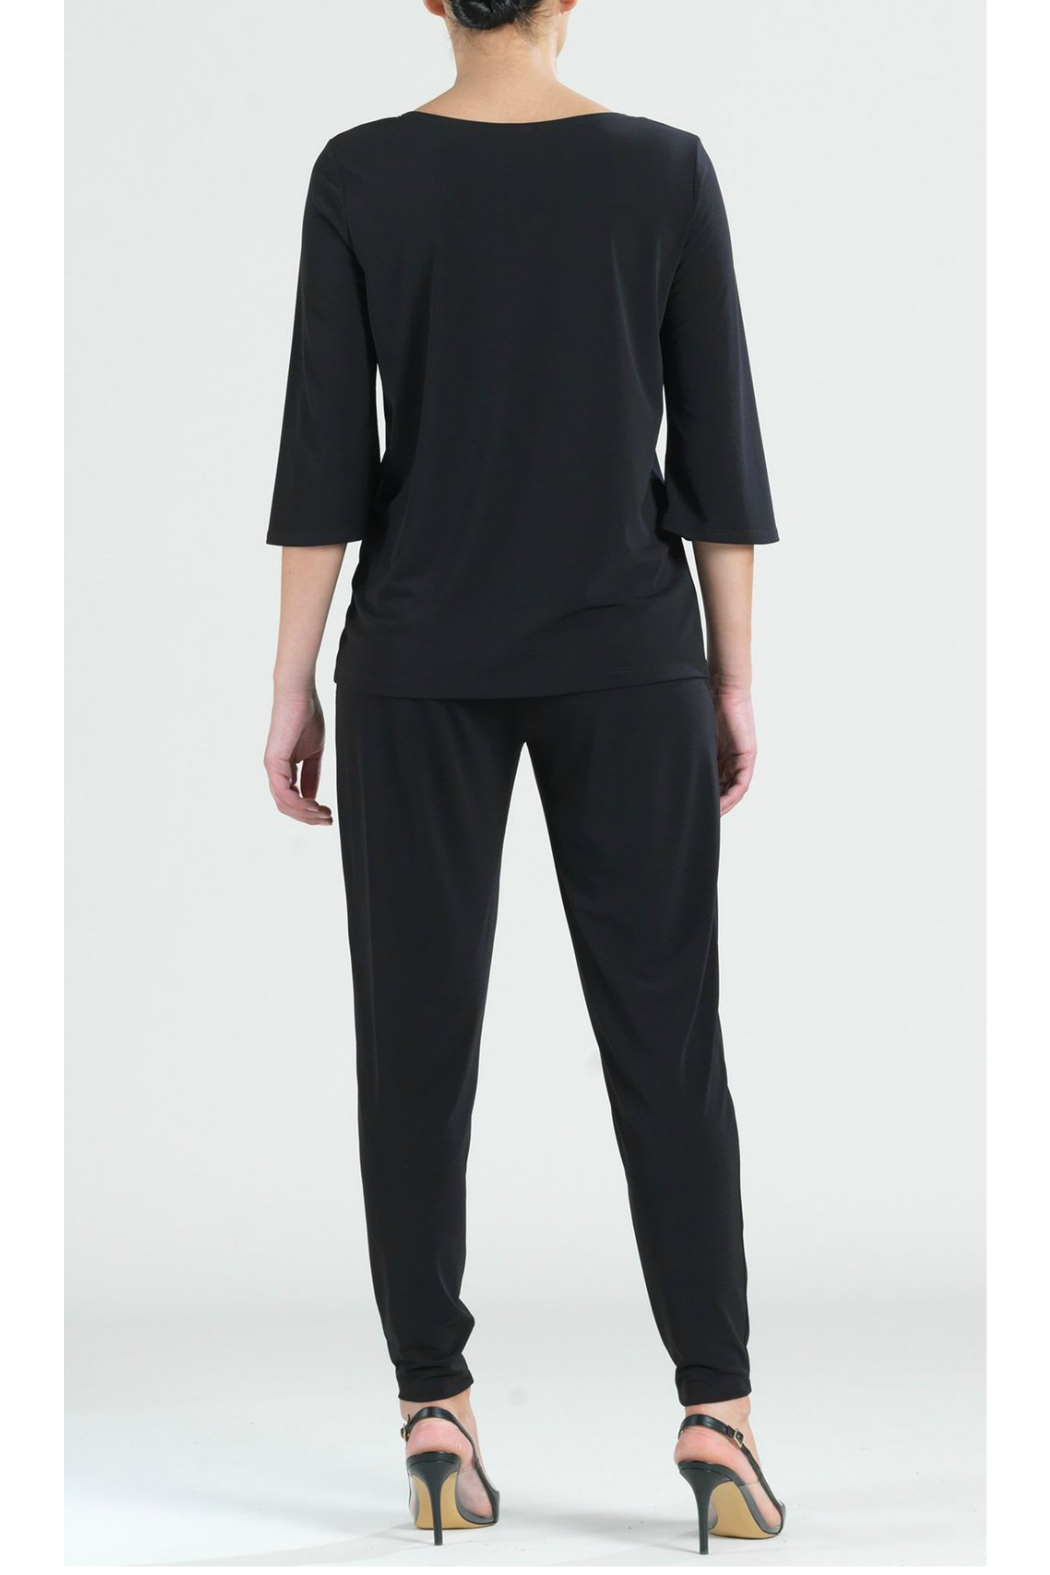 Clara Sunwoo Solid knit top w/ faux pull-tie detail - Side Cropped Image